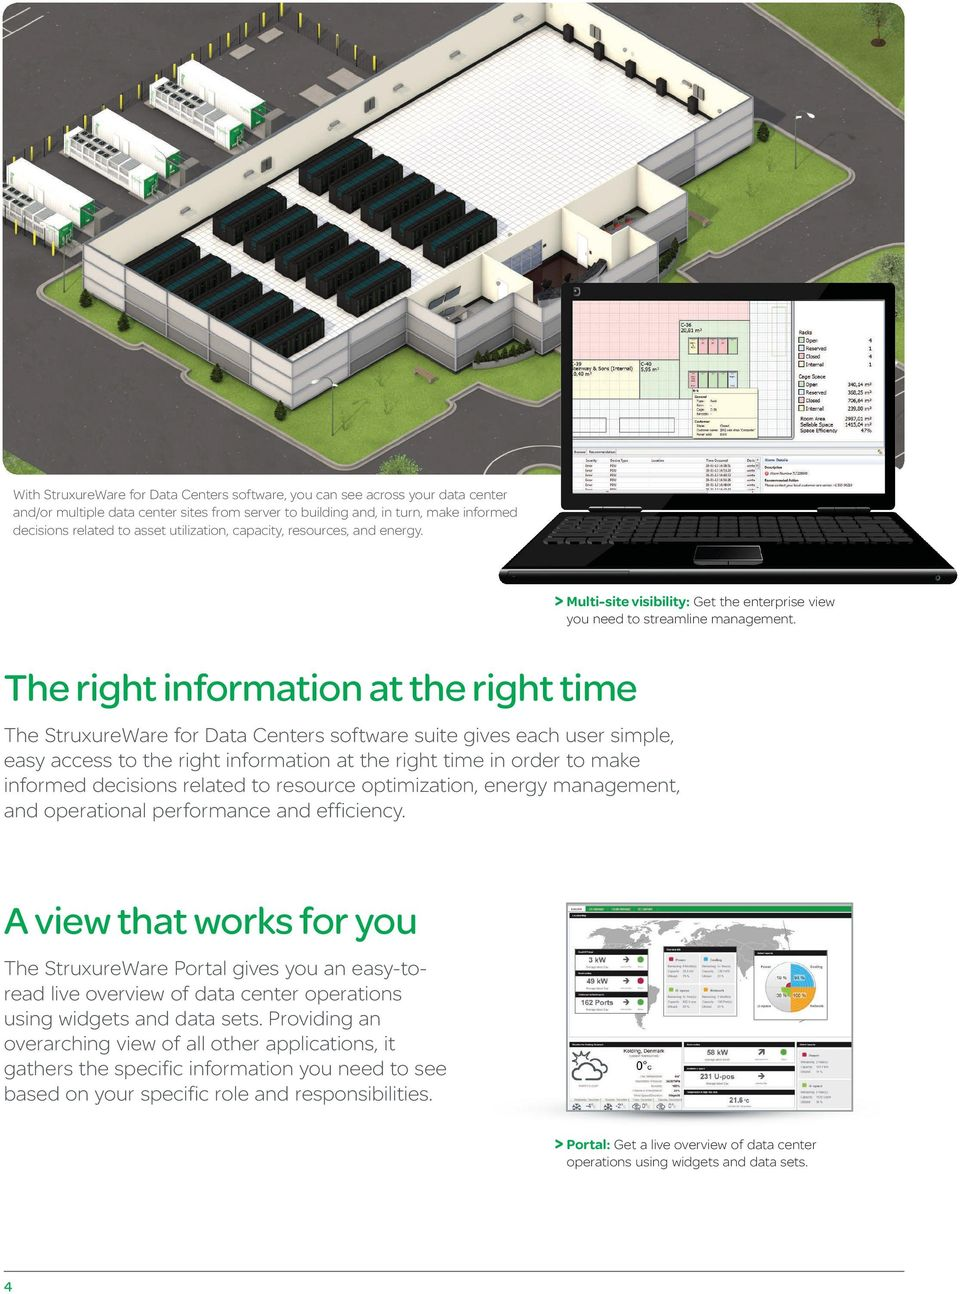 The right information at the right time The StruxureWare for Data Centers software suite gives each user simple, easy access to the right information at the right time in order to make informed